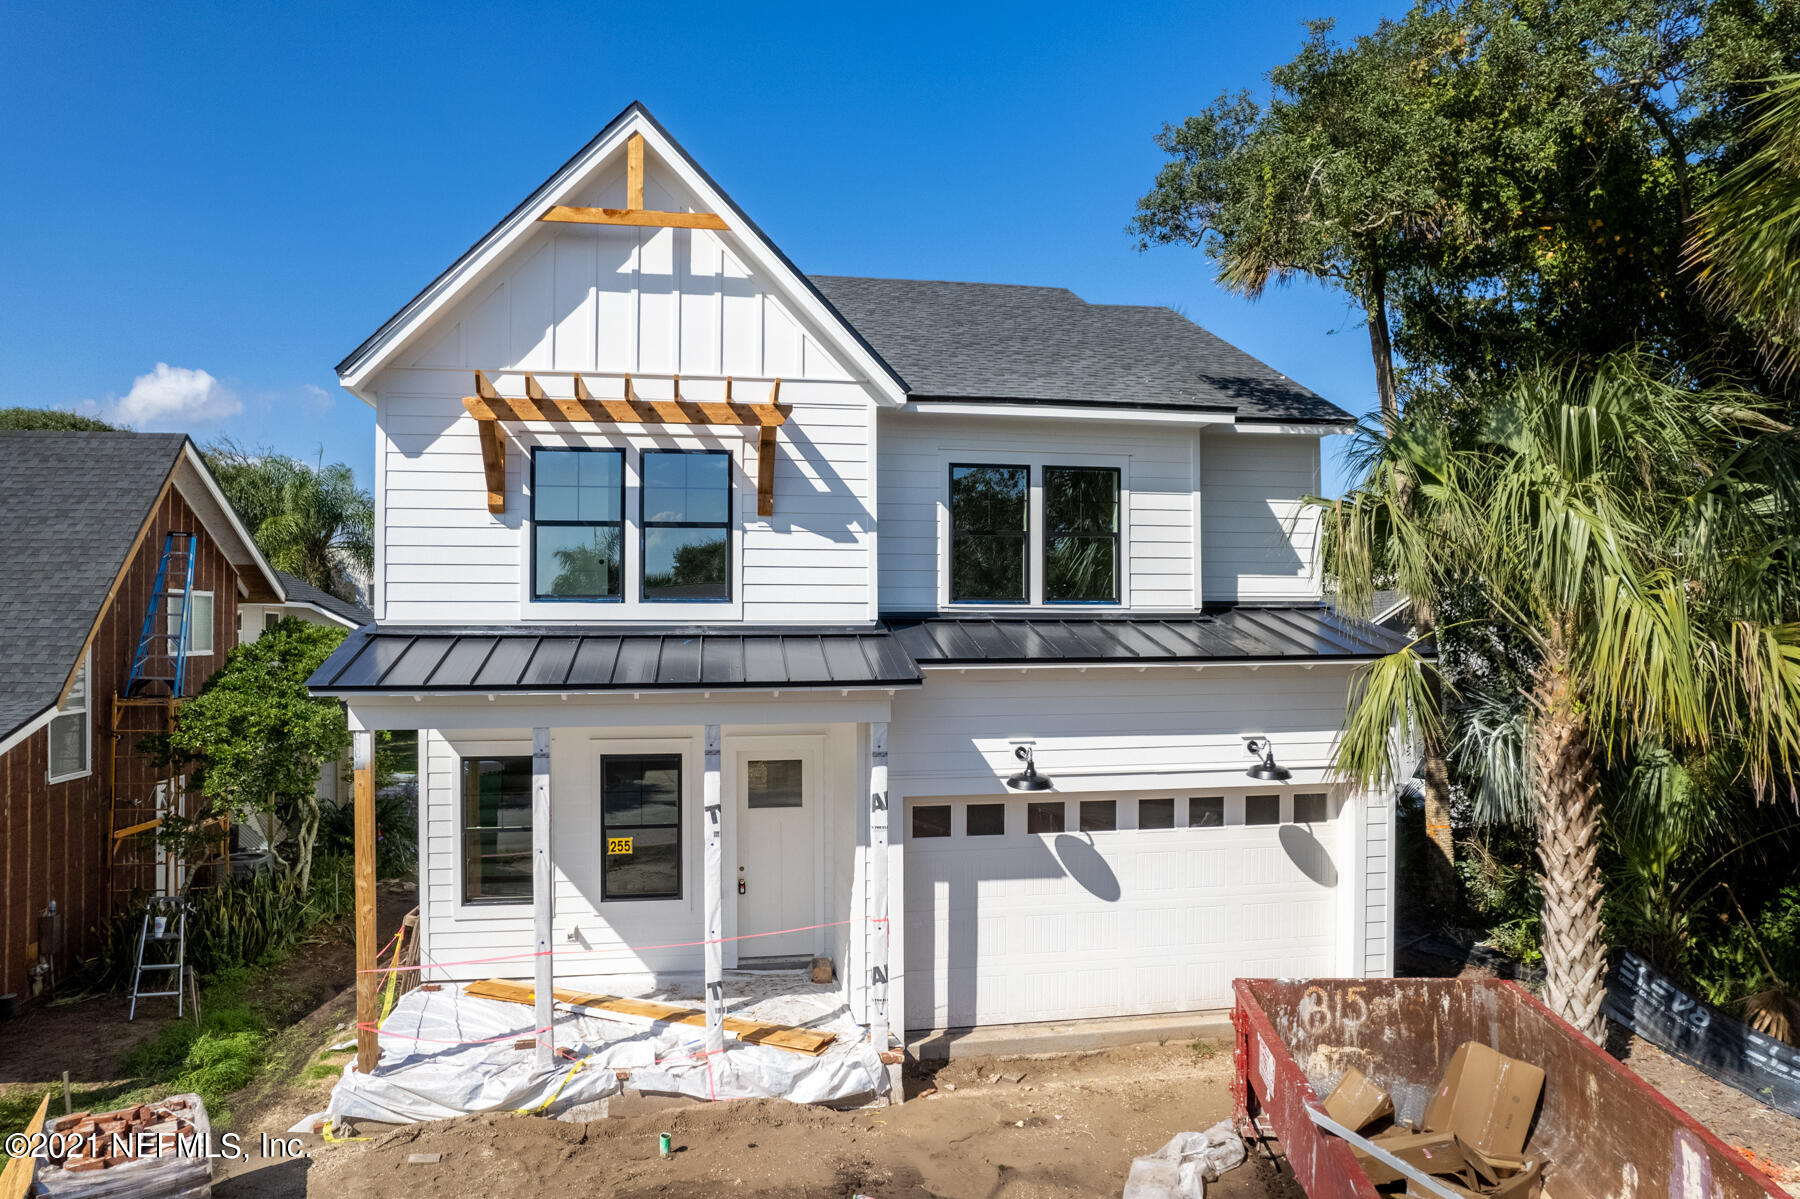 Modern Farmhouse in the heart of Atlantic Beach just one block from the sand! Design by Nesting Place Interiors to satisfy the harshest of critics and provide your sanctuary in one of the most desirable beaches in Northeast Florida. This home provides 4 beds/3.5 baths and just under 3300sqft of living. The open floor plan provides ample space for entertaining indoors while pocket sliders allow great flow to the covered lanai. Second floor master features vaulted ceilings, huge his/her closets, and a spa like bathroom for a truly palatial feel. Three additional bedrooms, loft area, and a large laundry finish off this level. This home really has it all! Call for more info.